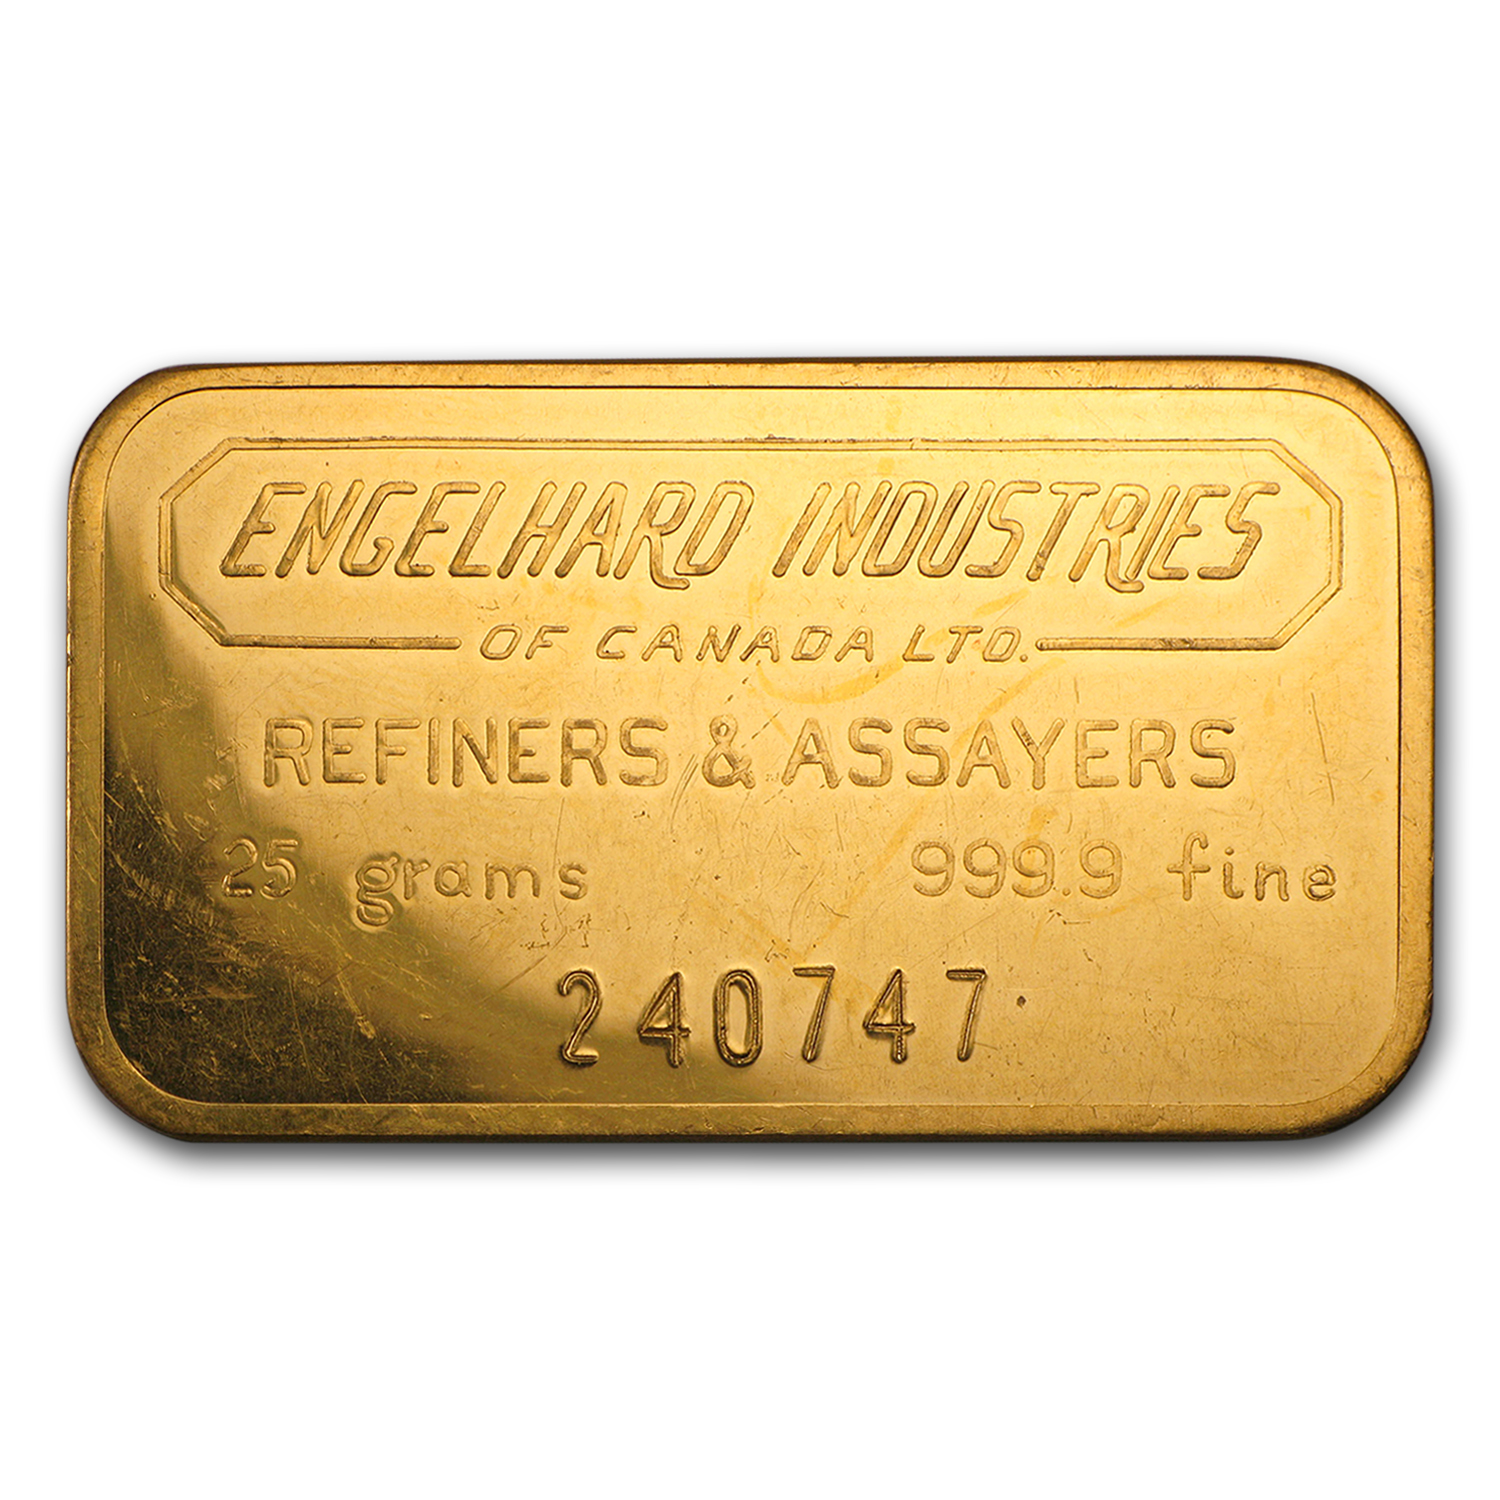 25 gram Gold Bars - Engelhard Industries of Canada